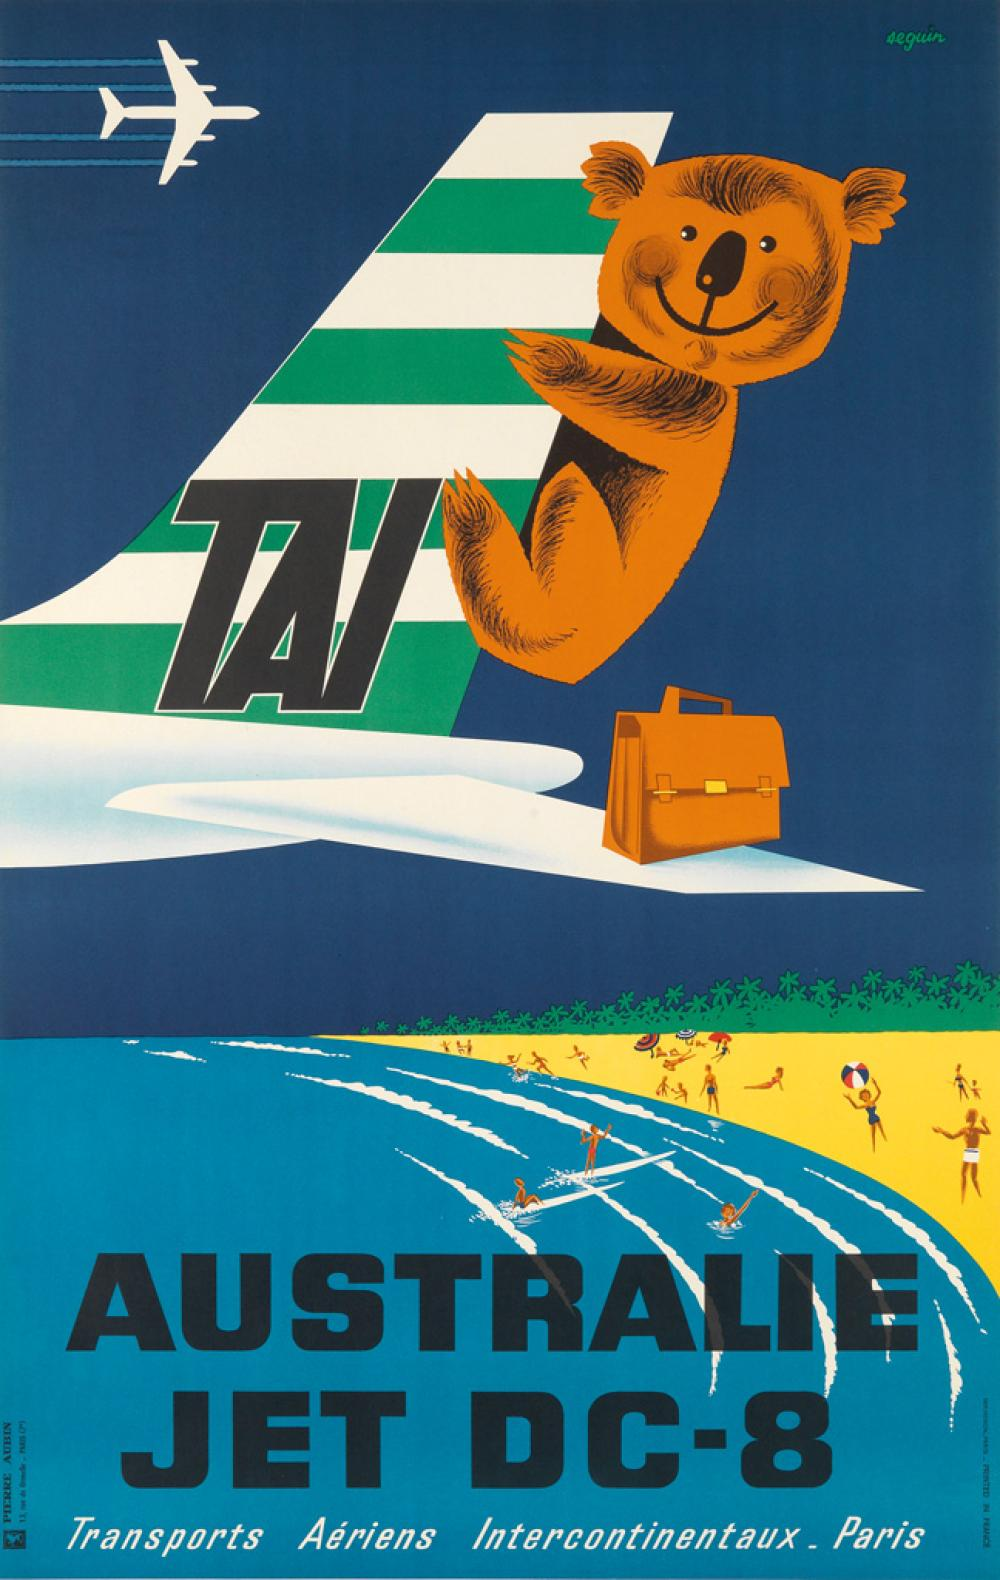 SEGUIN (DATES UNKNOWN). AUSTRALIE / JET DC - 8. Circa 1960s. 38x24 inches, 98x61 cm. Henon, Paris.